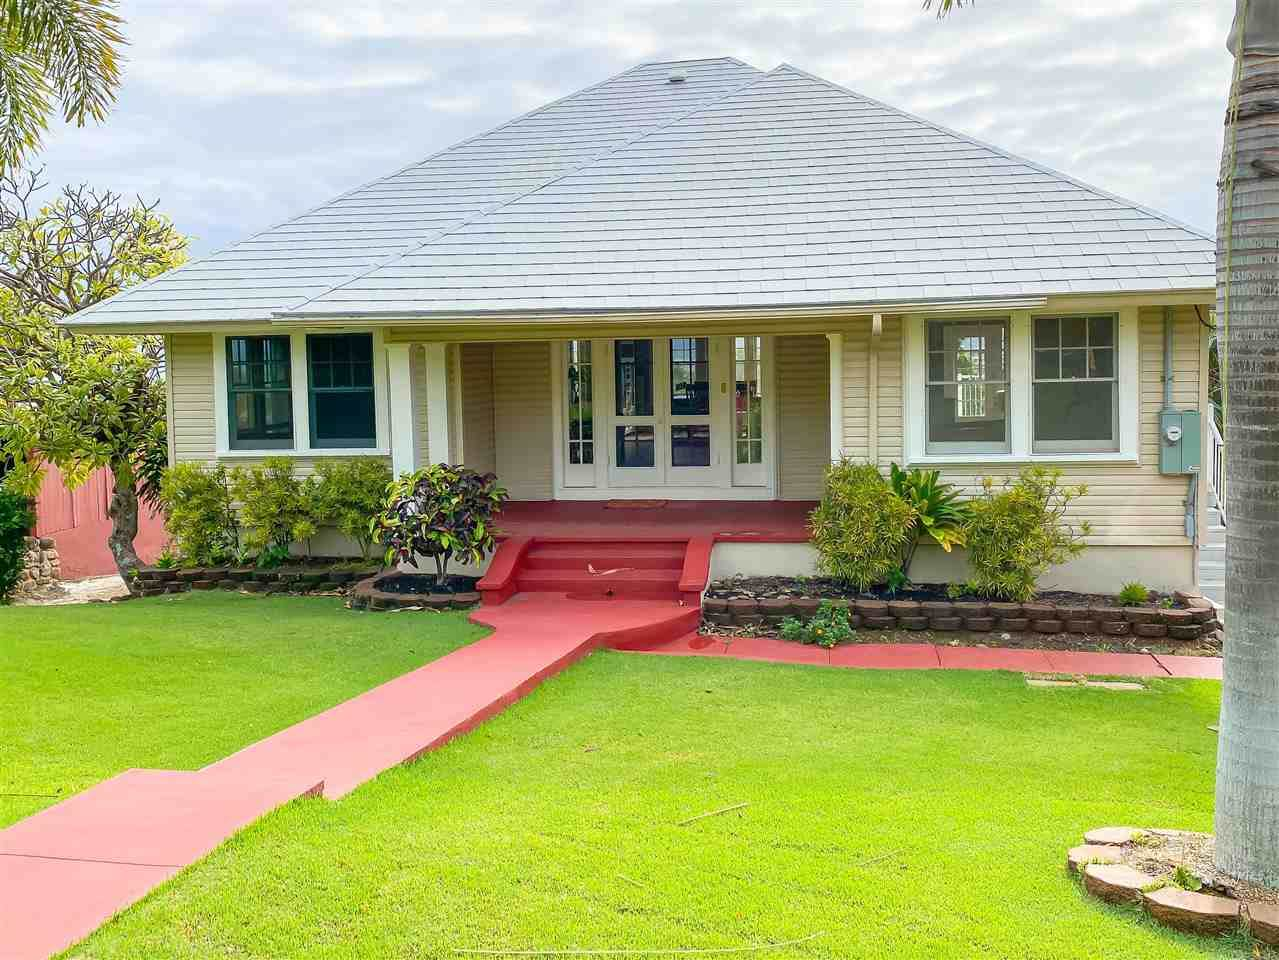 108 Naniloa Dr - Photo 1